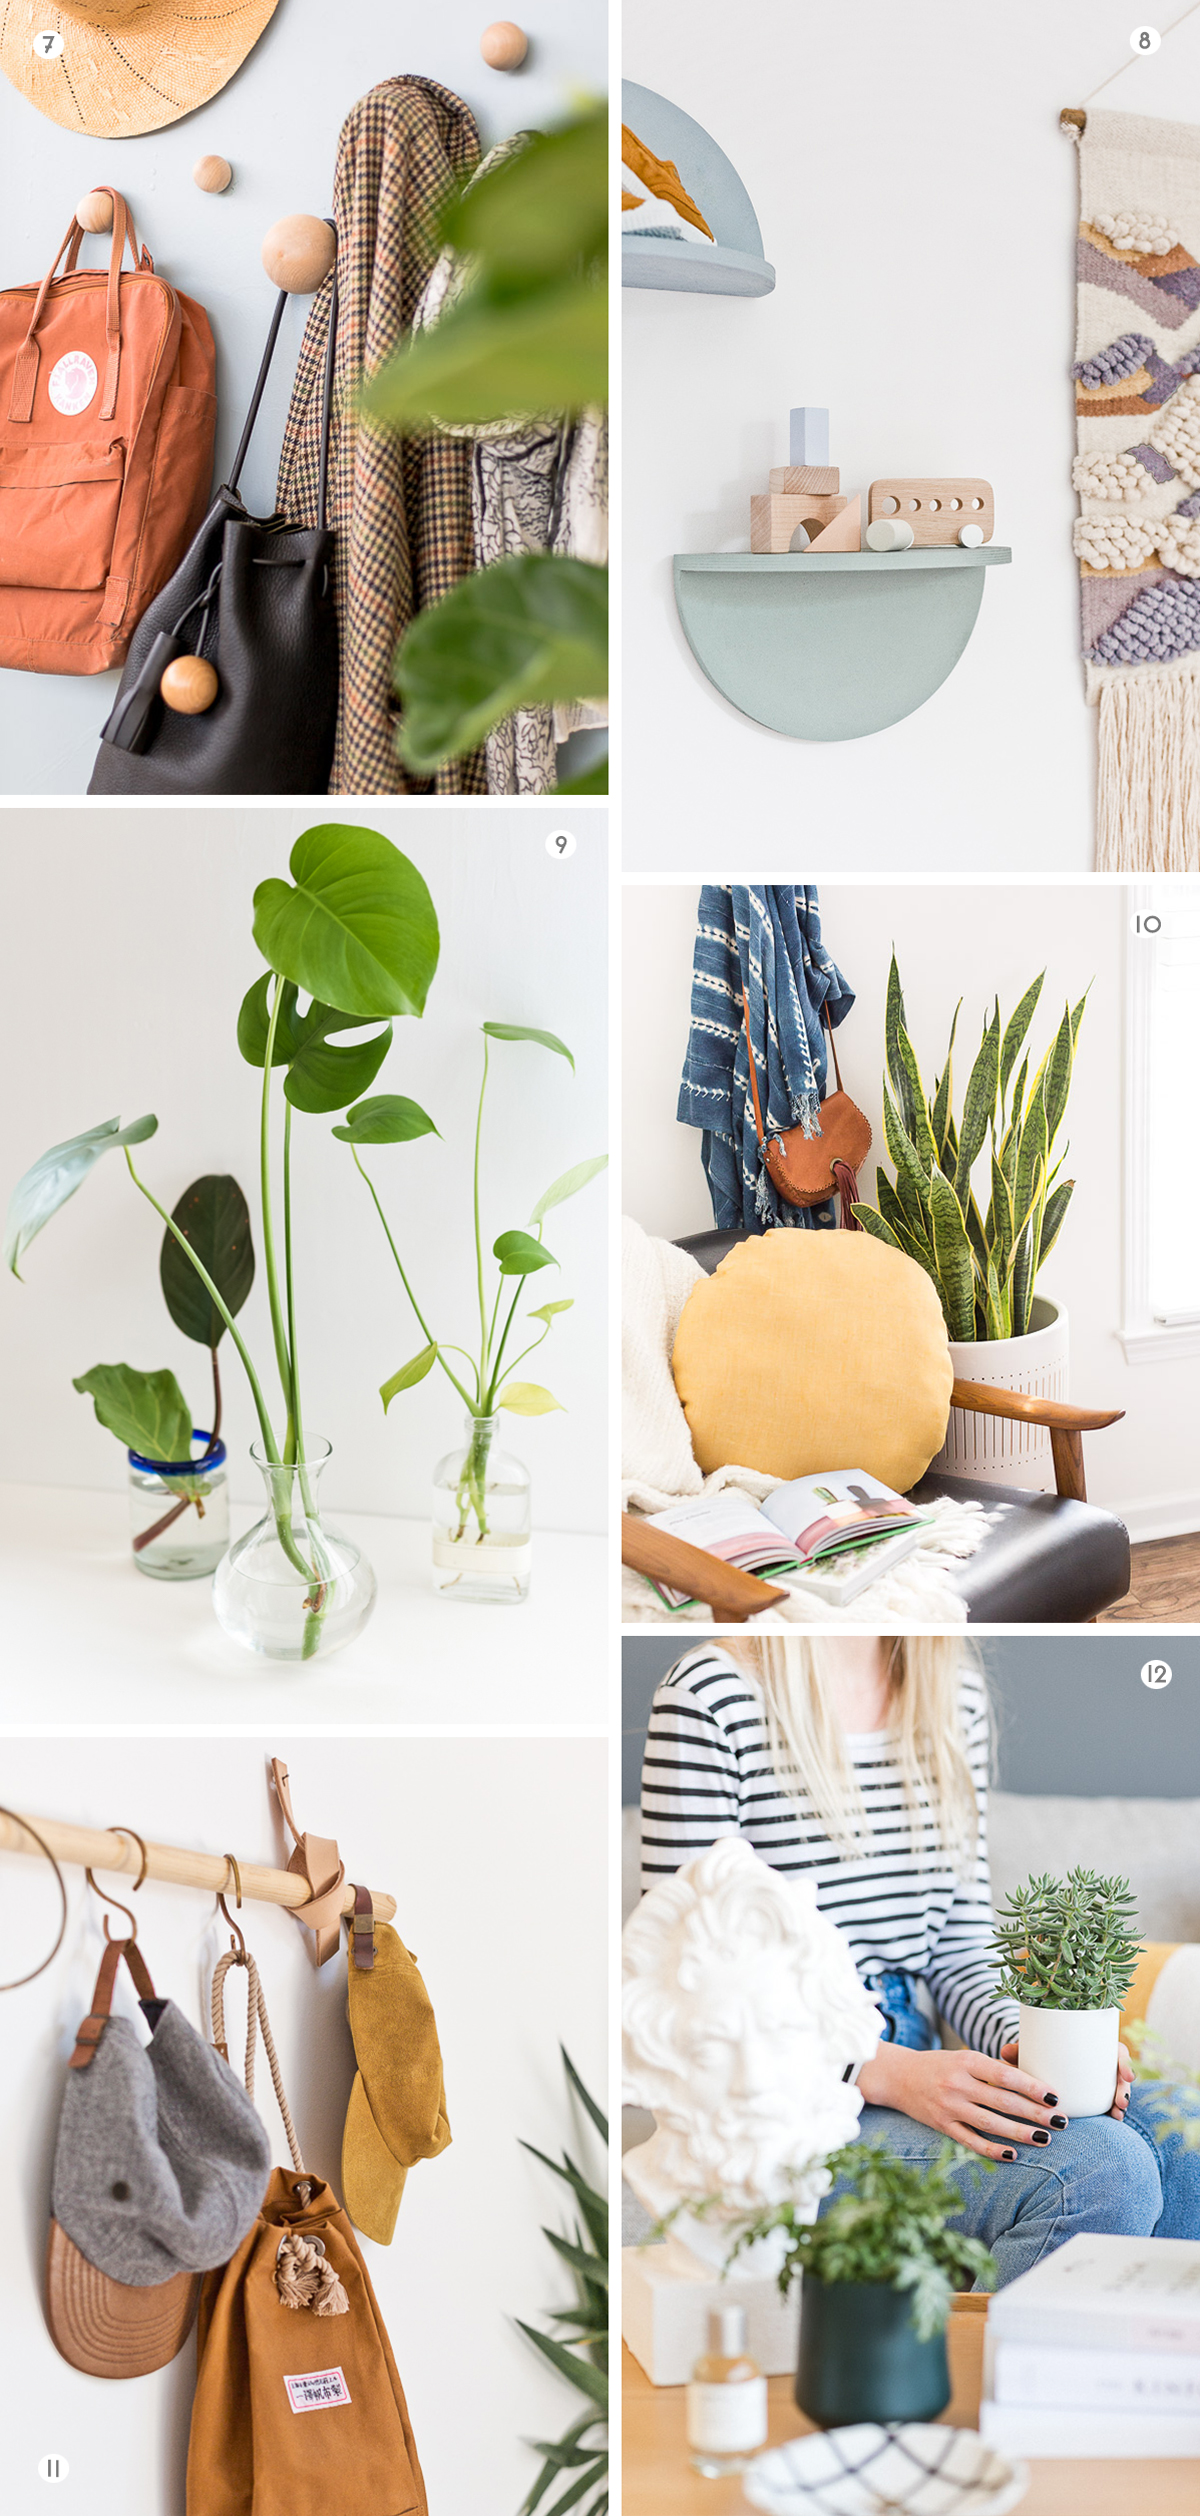 12 (Home Decor) DIYs to Try This Weekend #weekendproject #diy #diyhome #homedecor #housewares #modernhome #minimalhome